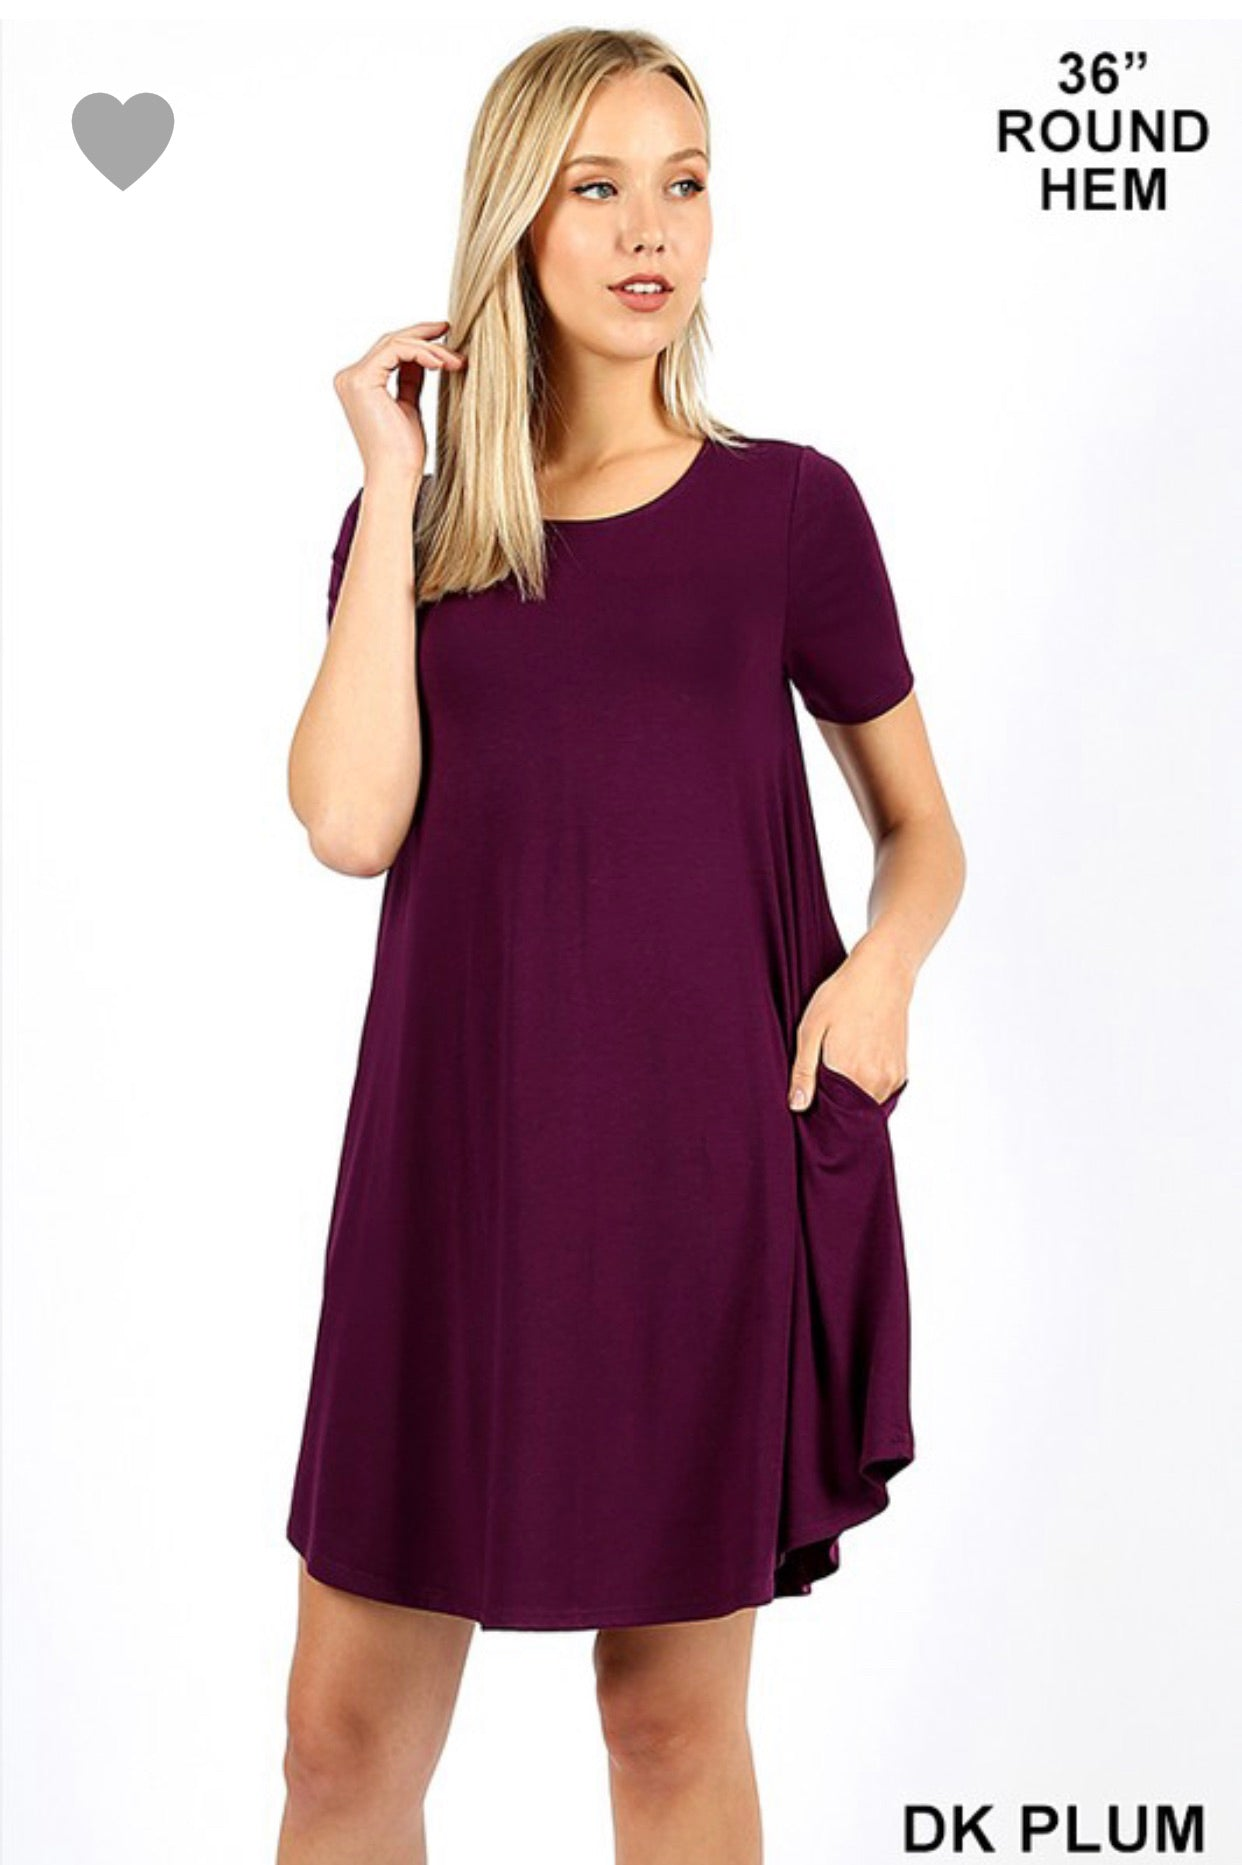 Spring has Sprung Dress Dark Plum - Crowned Boutique